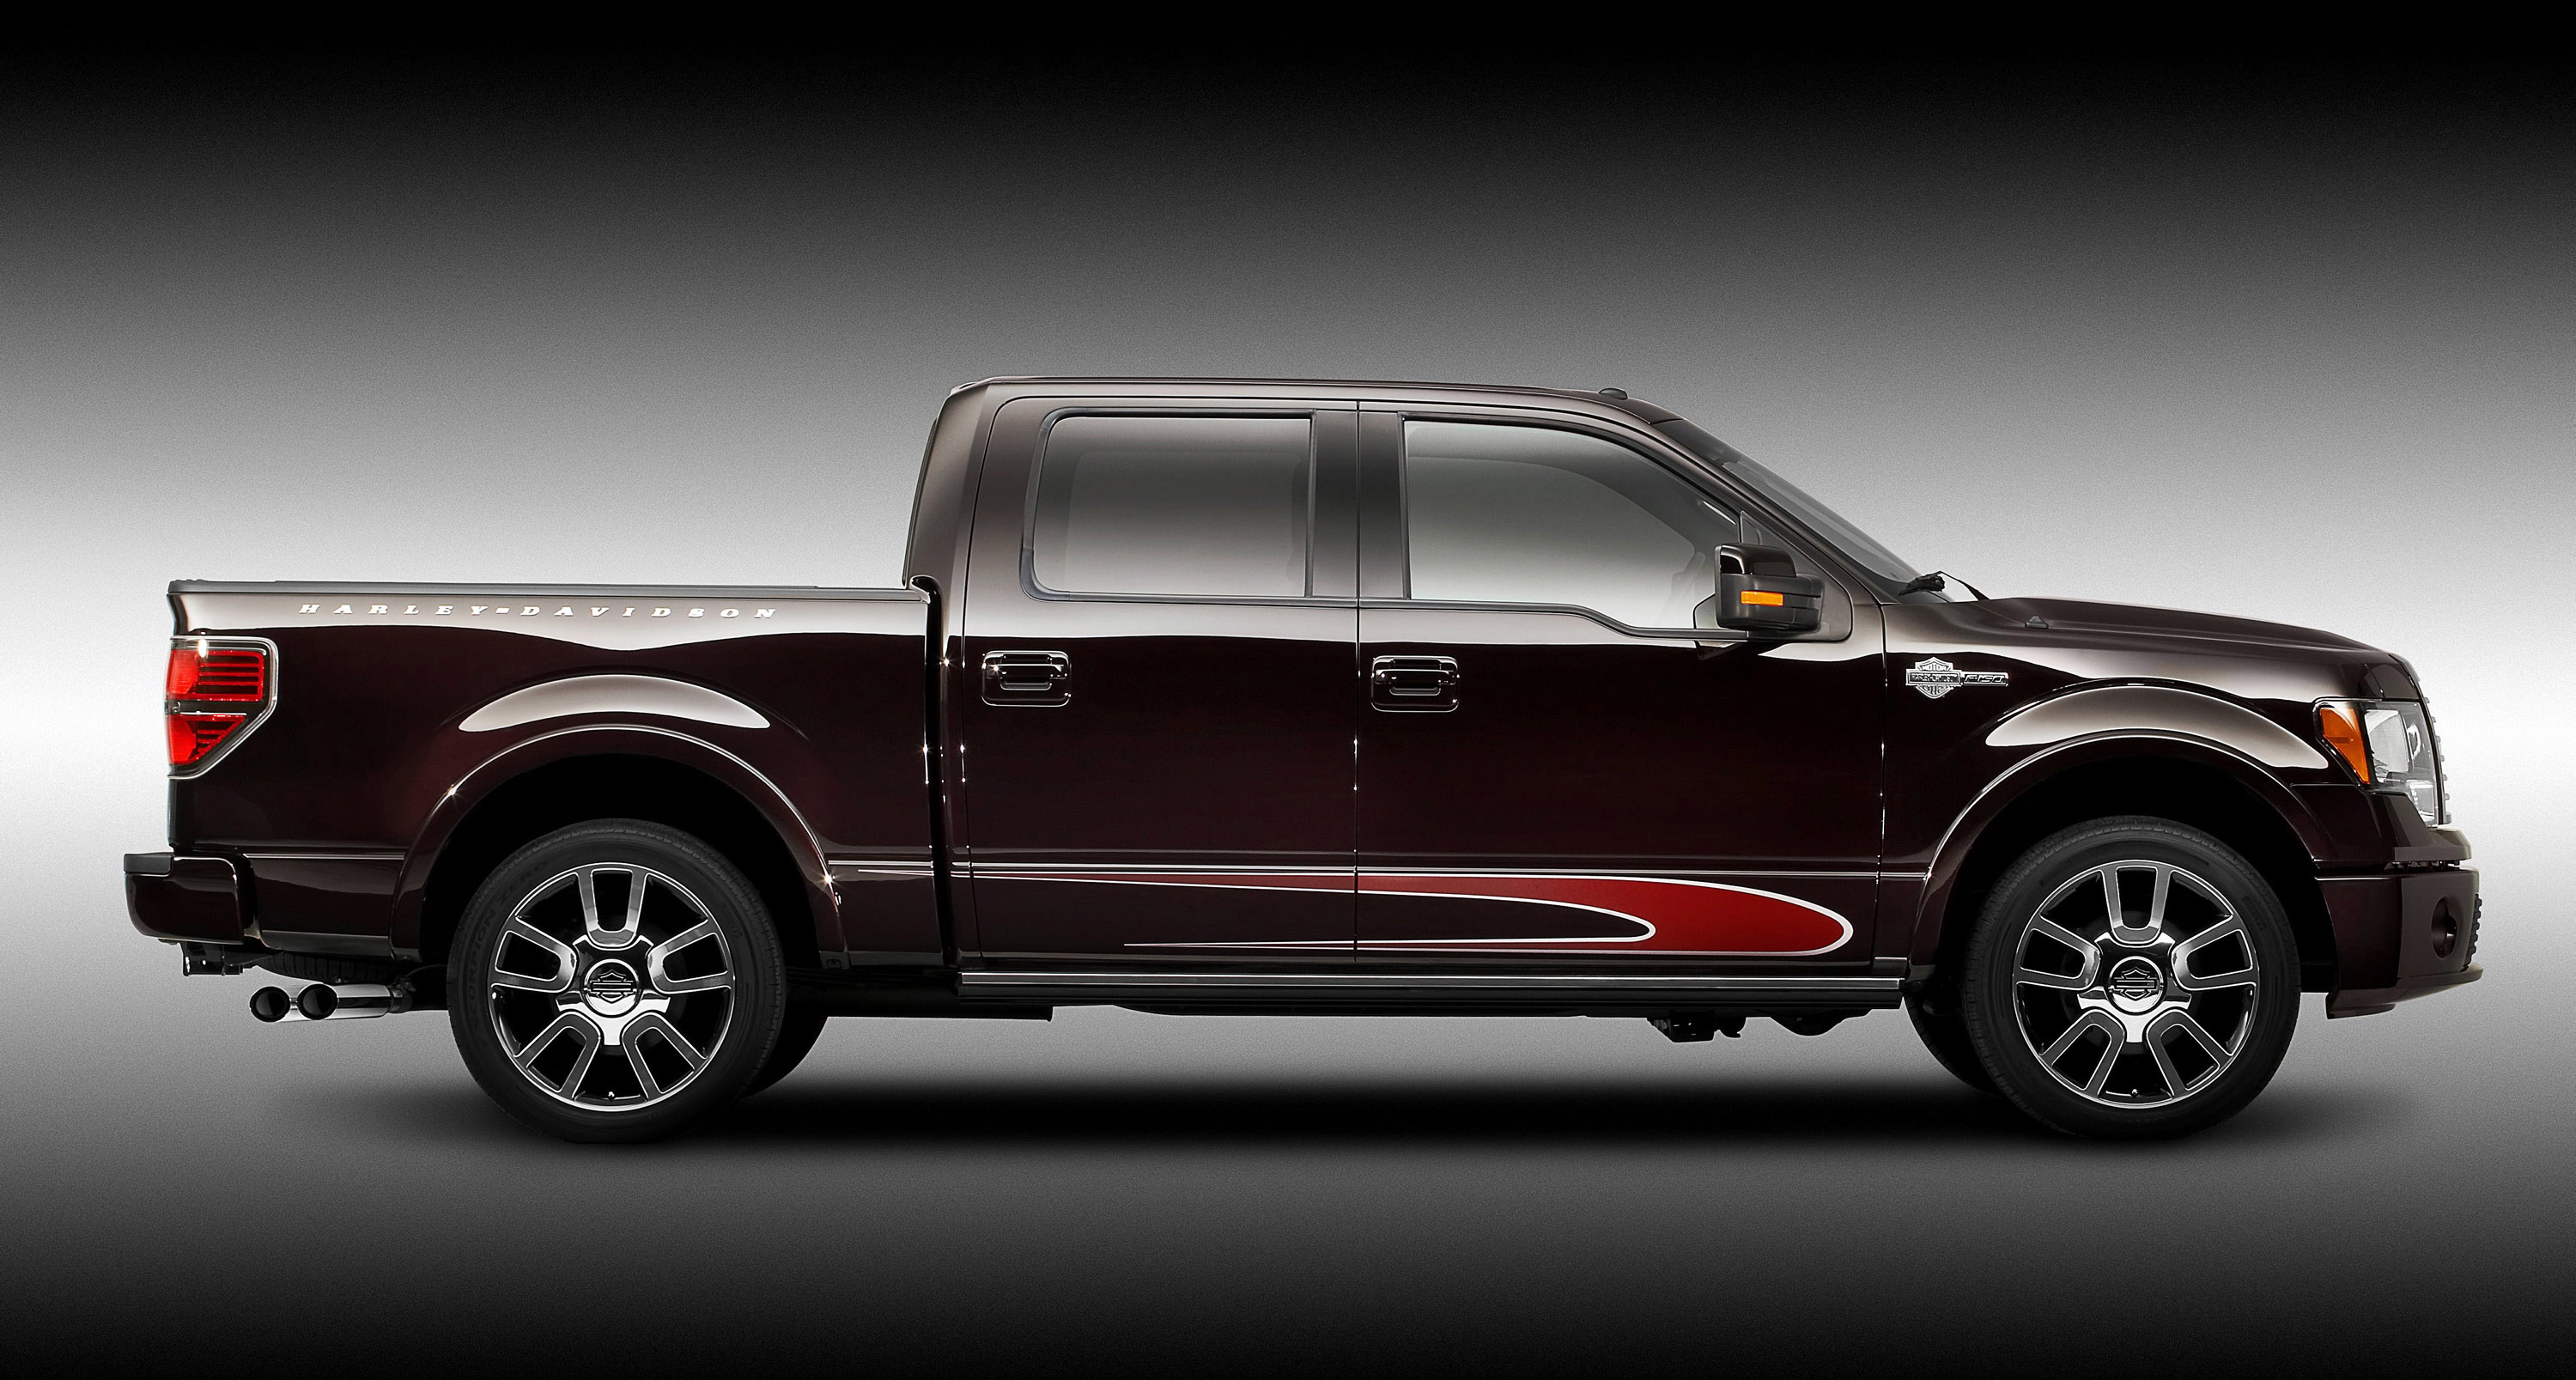 2010 Ford Harley-Davidson F-150 - Picture 12805